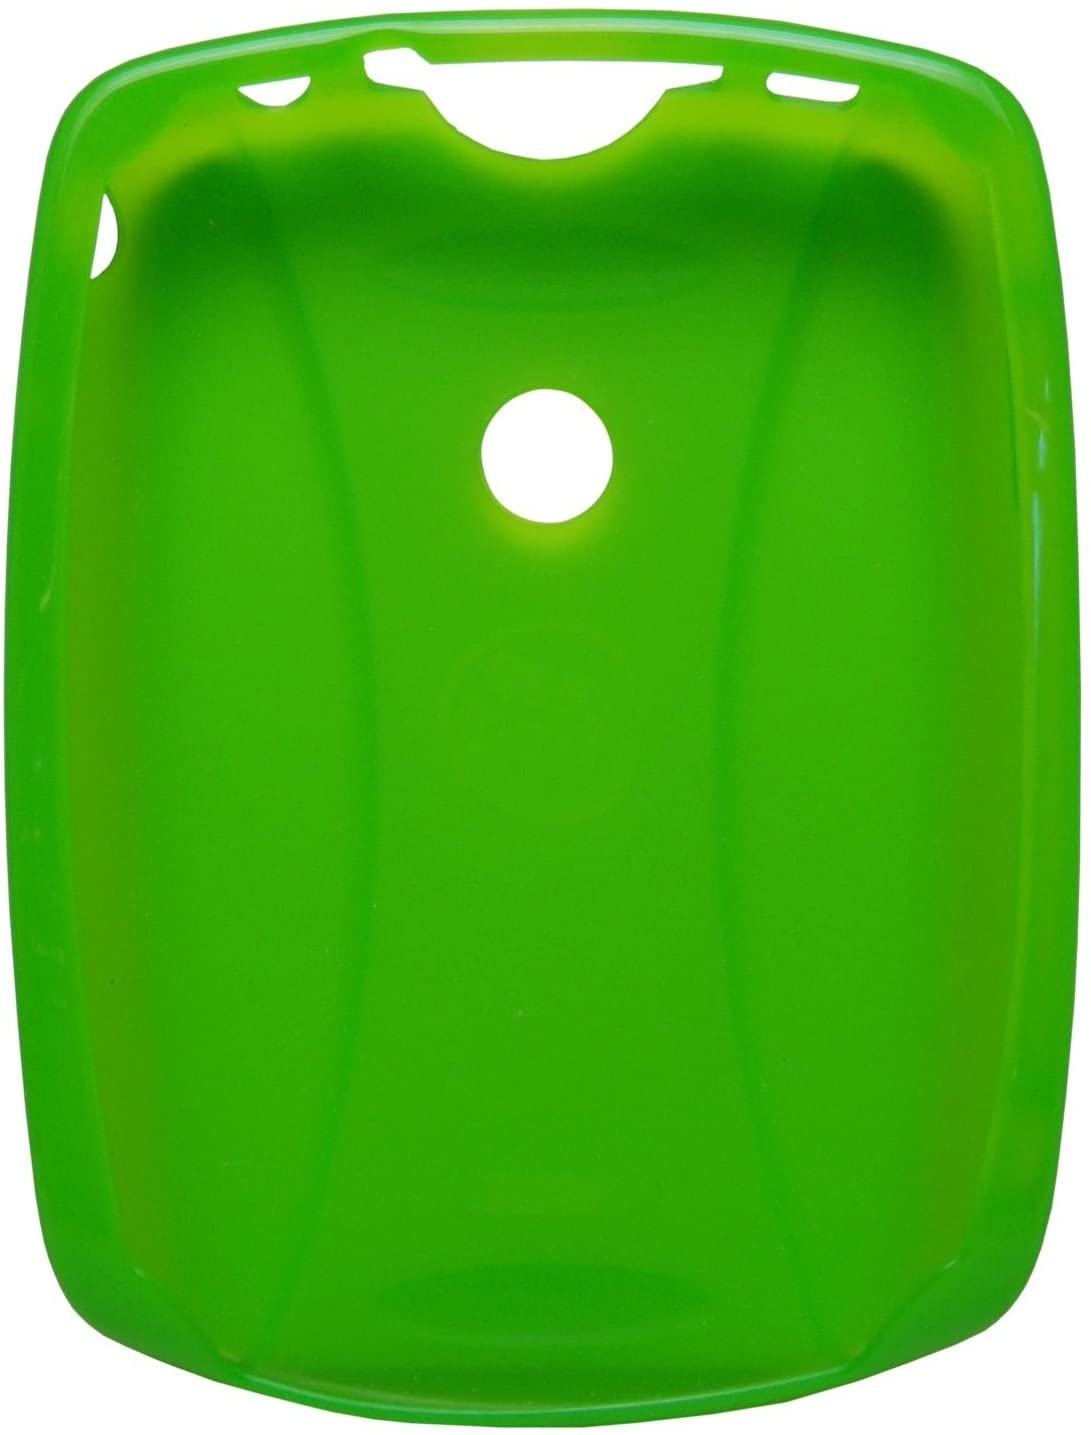 LeapFrog LeapPad2 Gel Skin, Green (Works with ONLY Leappad 2)